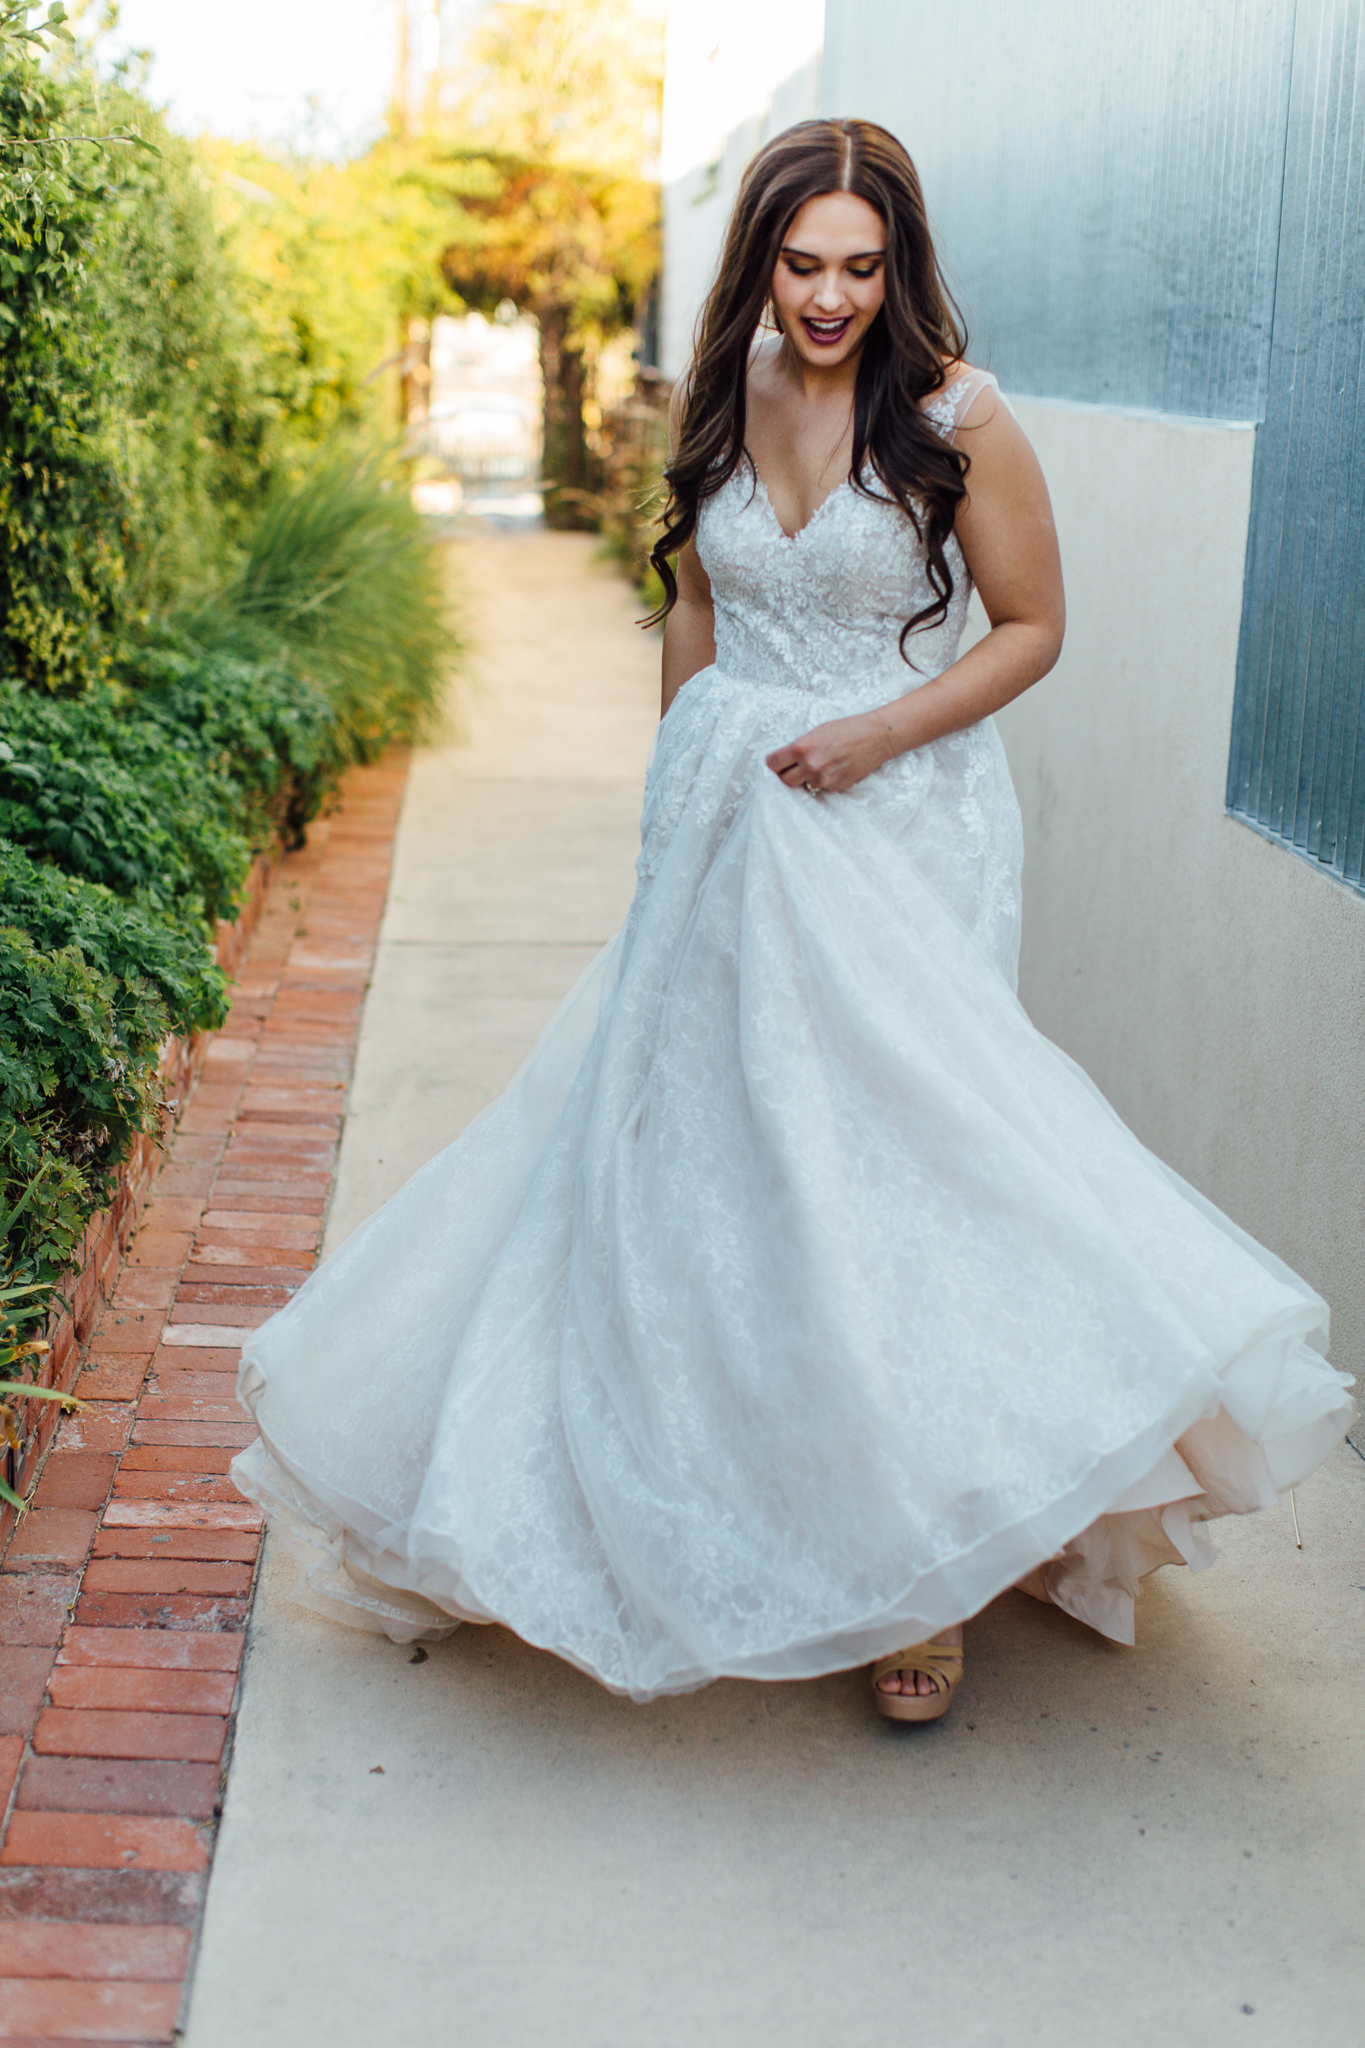 el-paso-wedding-photographer-104.jpg